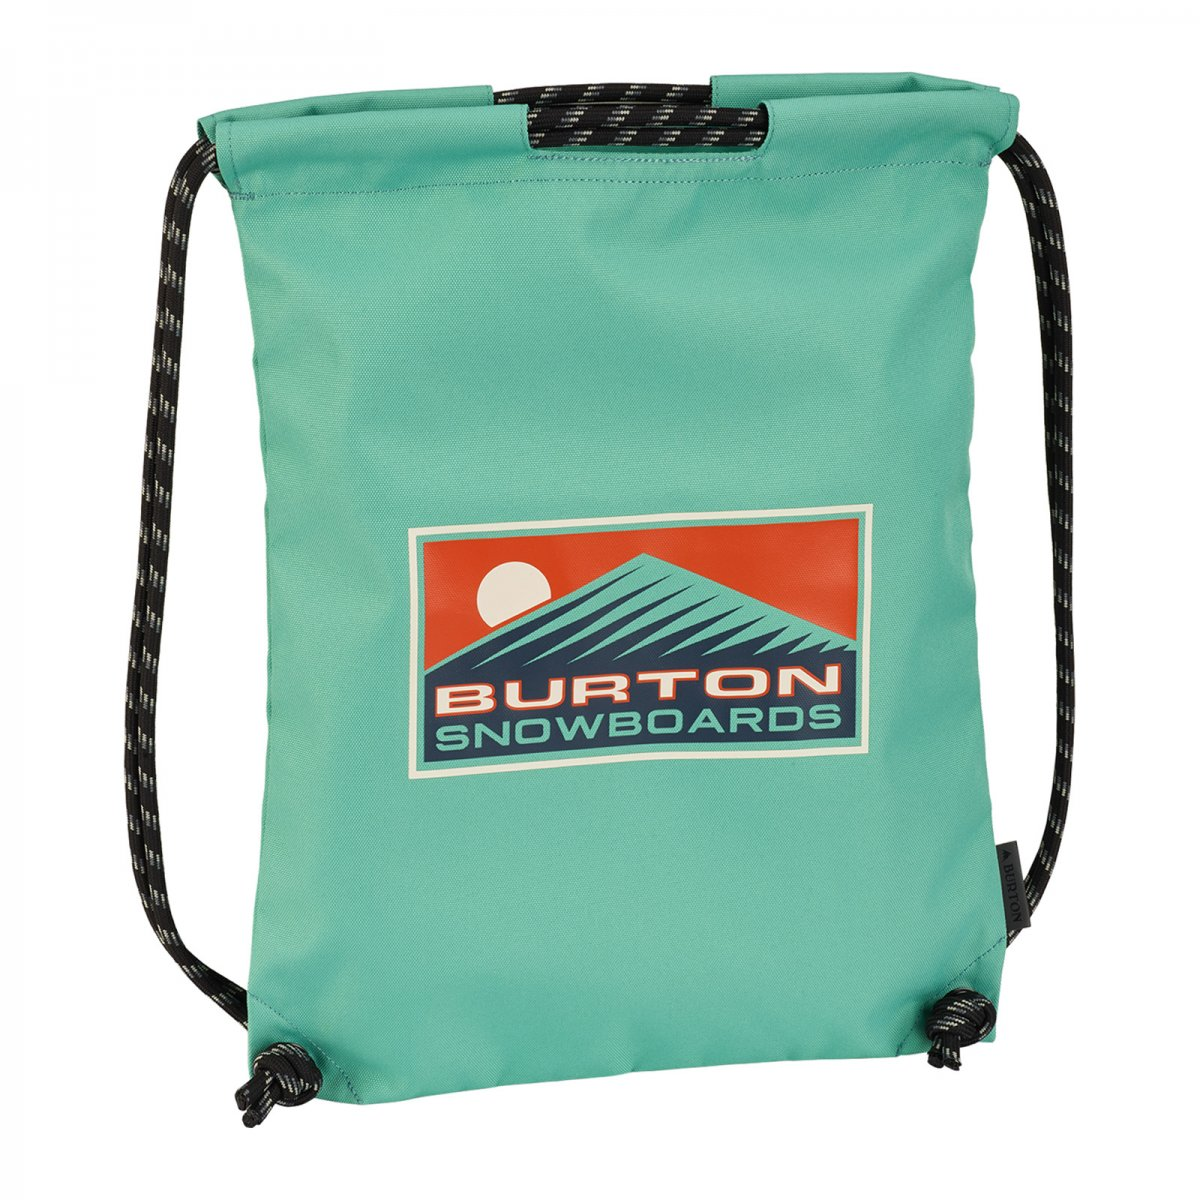 CINCH BAG